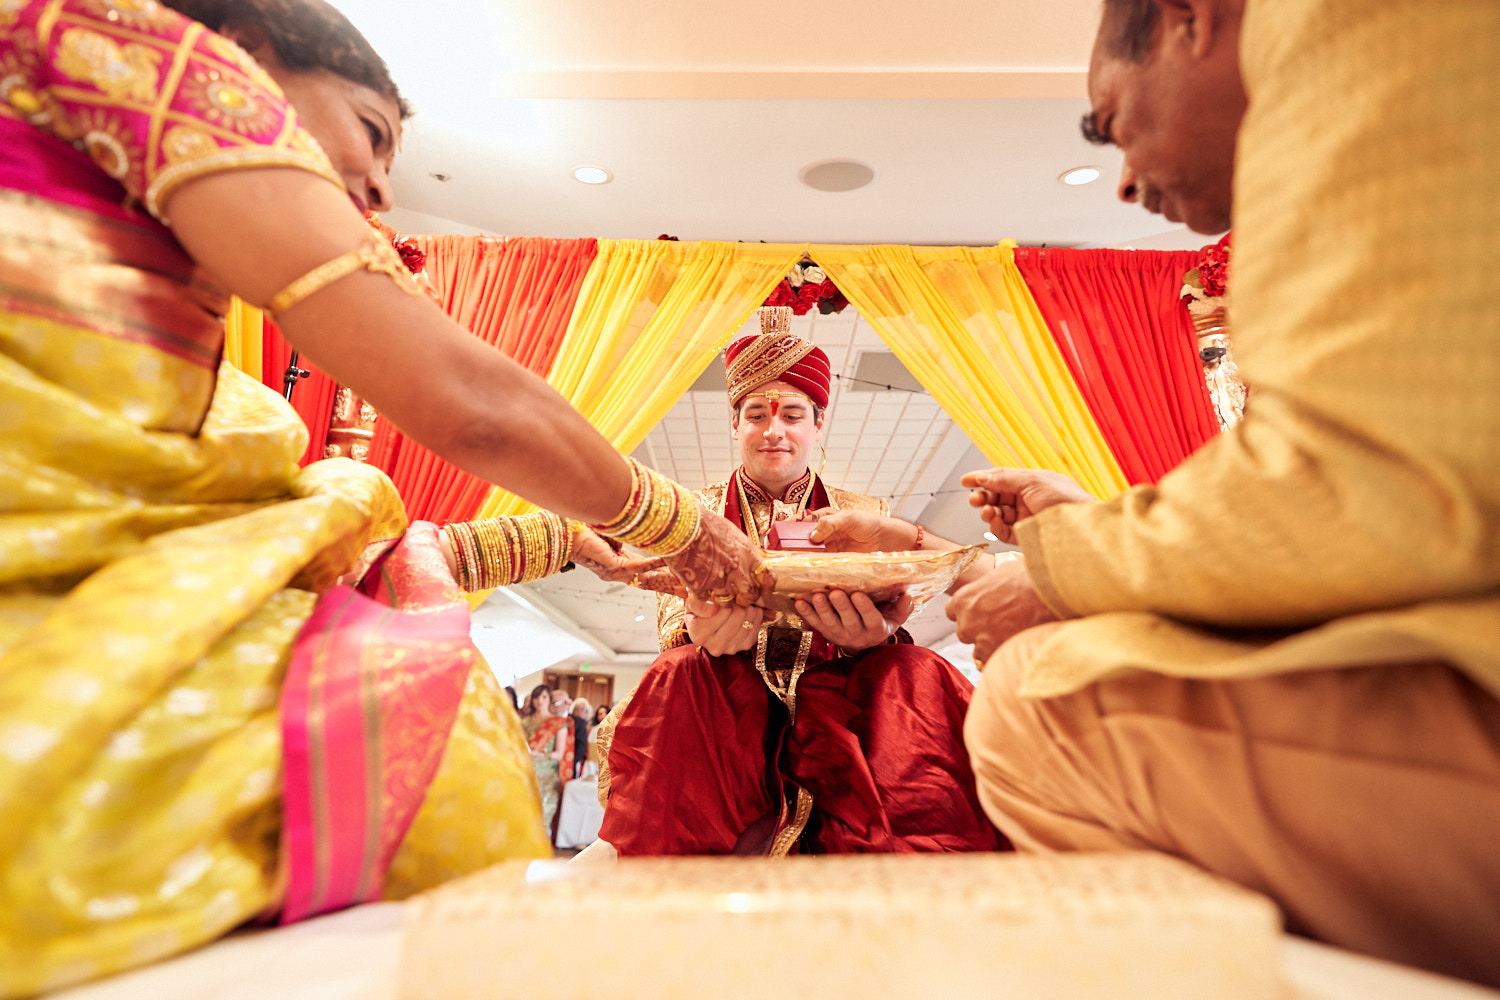 south-indian-wedding-ceremony-photography-by-afewgoodclicks-net-in-saratoga 98.jpg